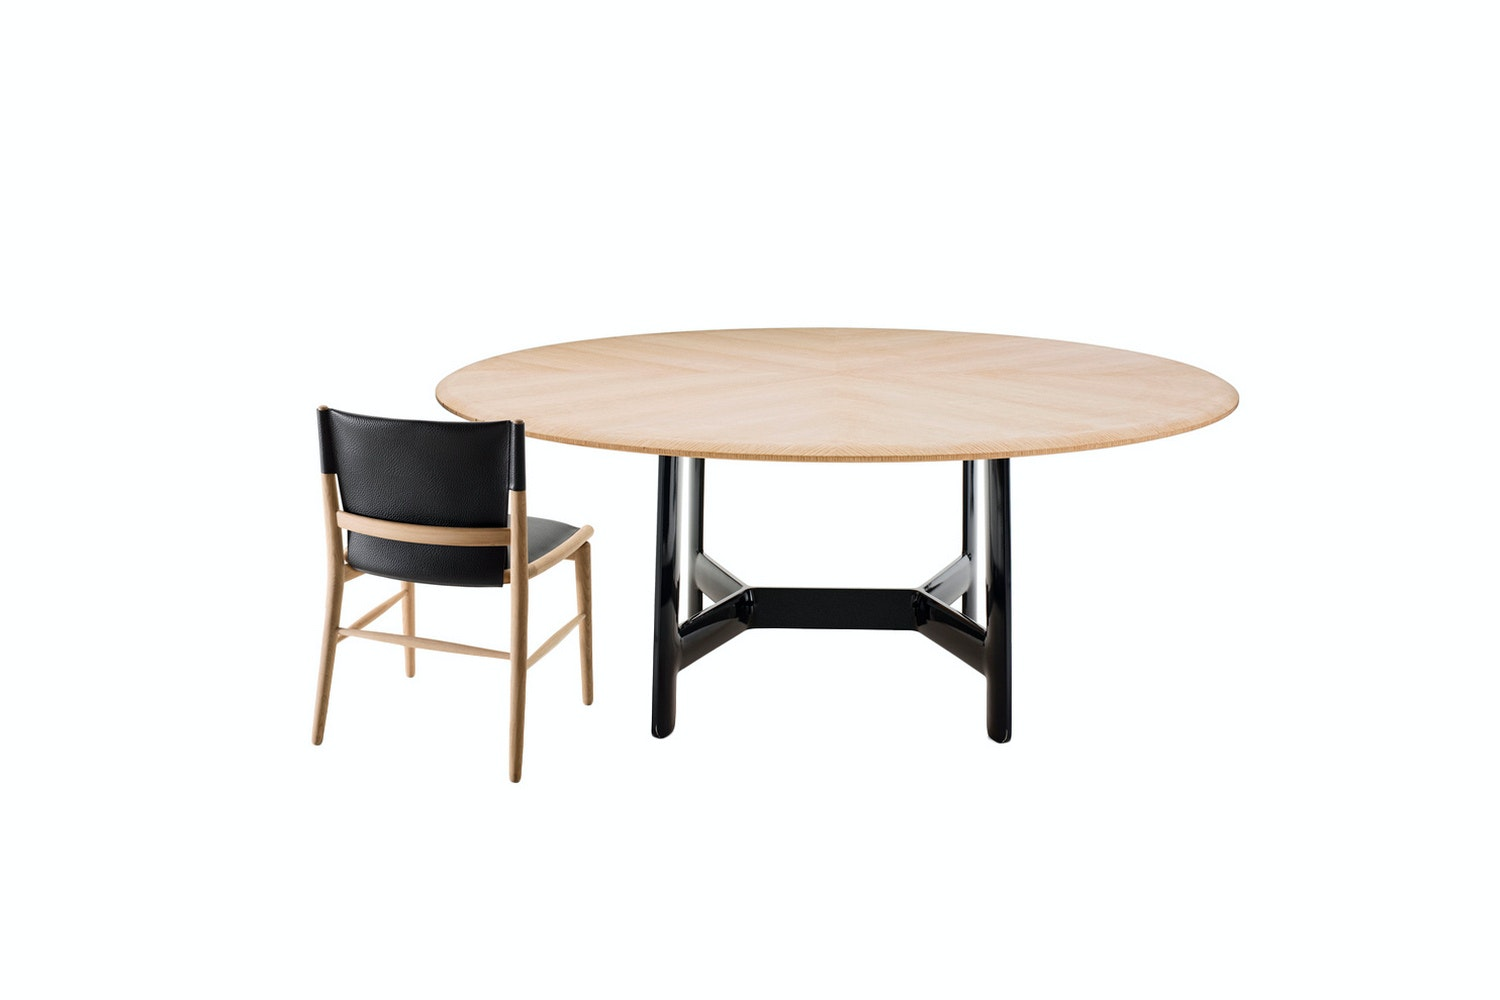 Alex Table by Antonio Citterio for B&B Italia